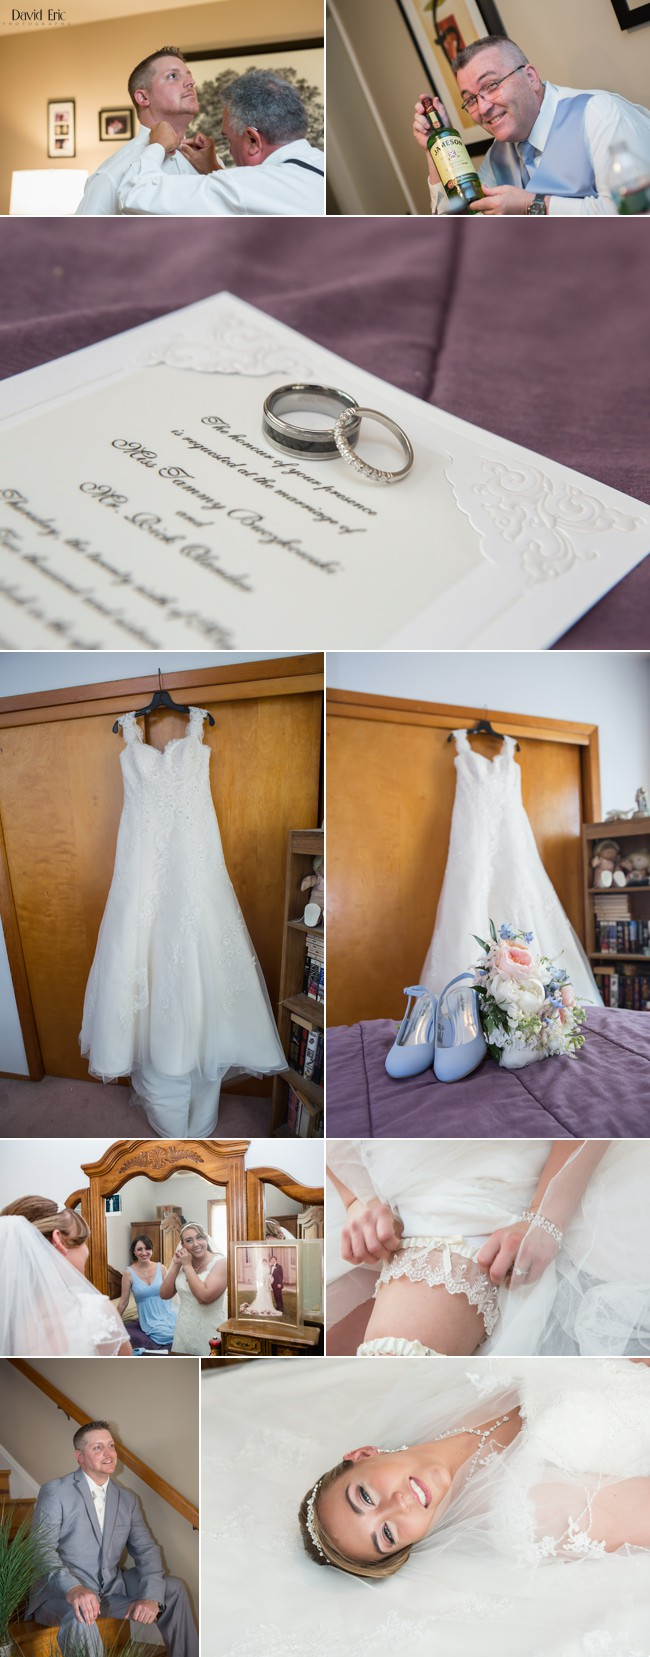 New Jersey Wedding - David Eric Photography40